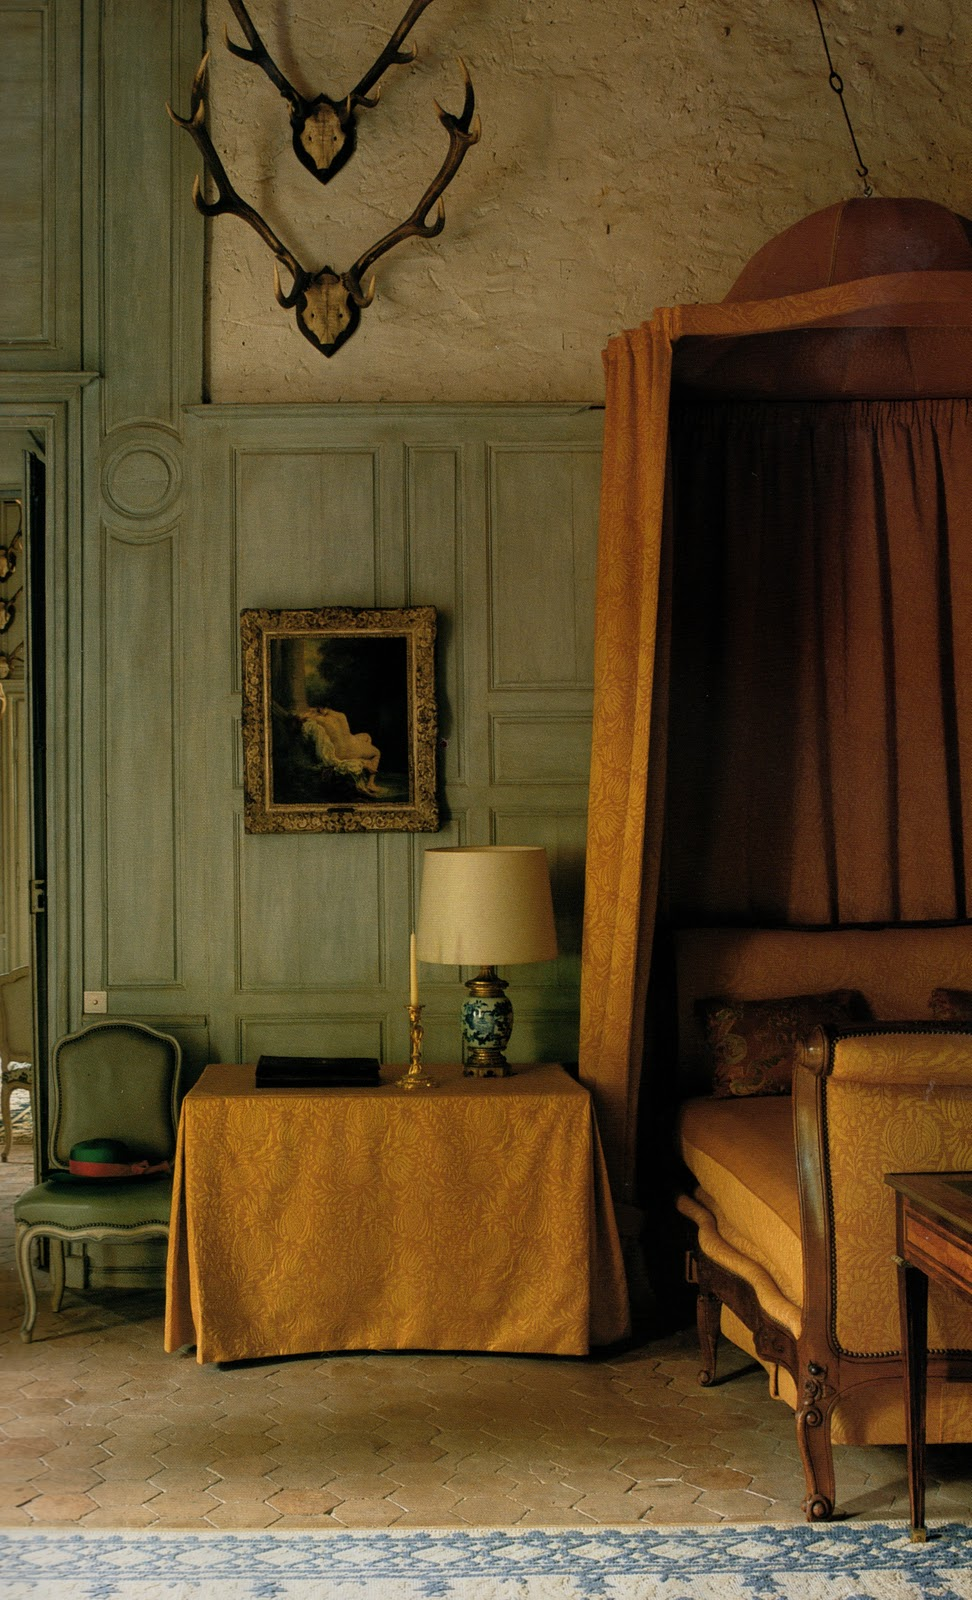 Genus loci the warmth of terra cotta for Photos of bedrooms around the world